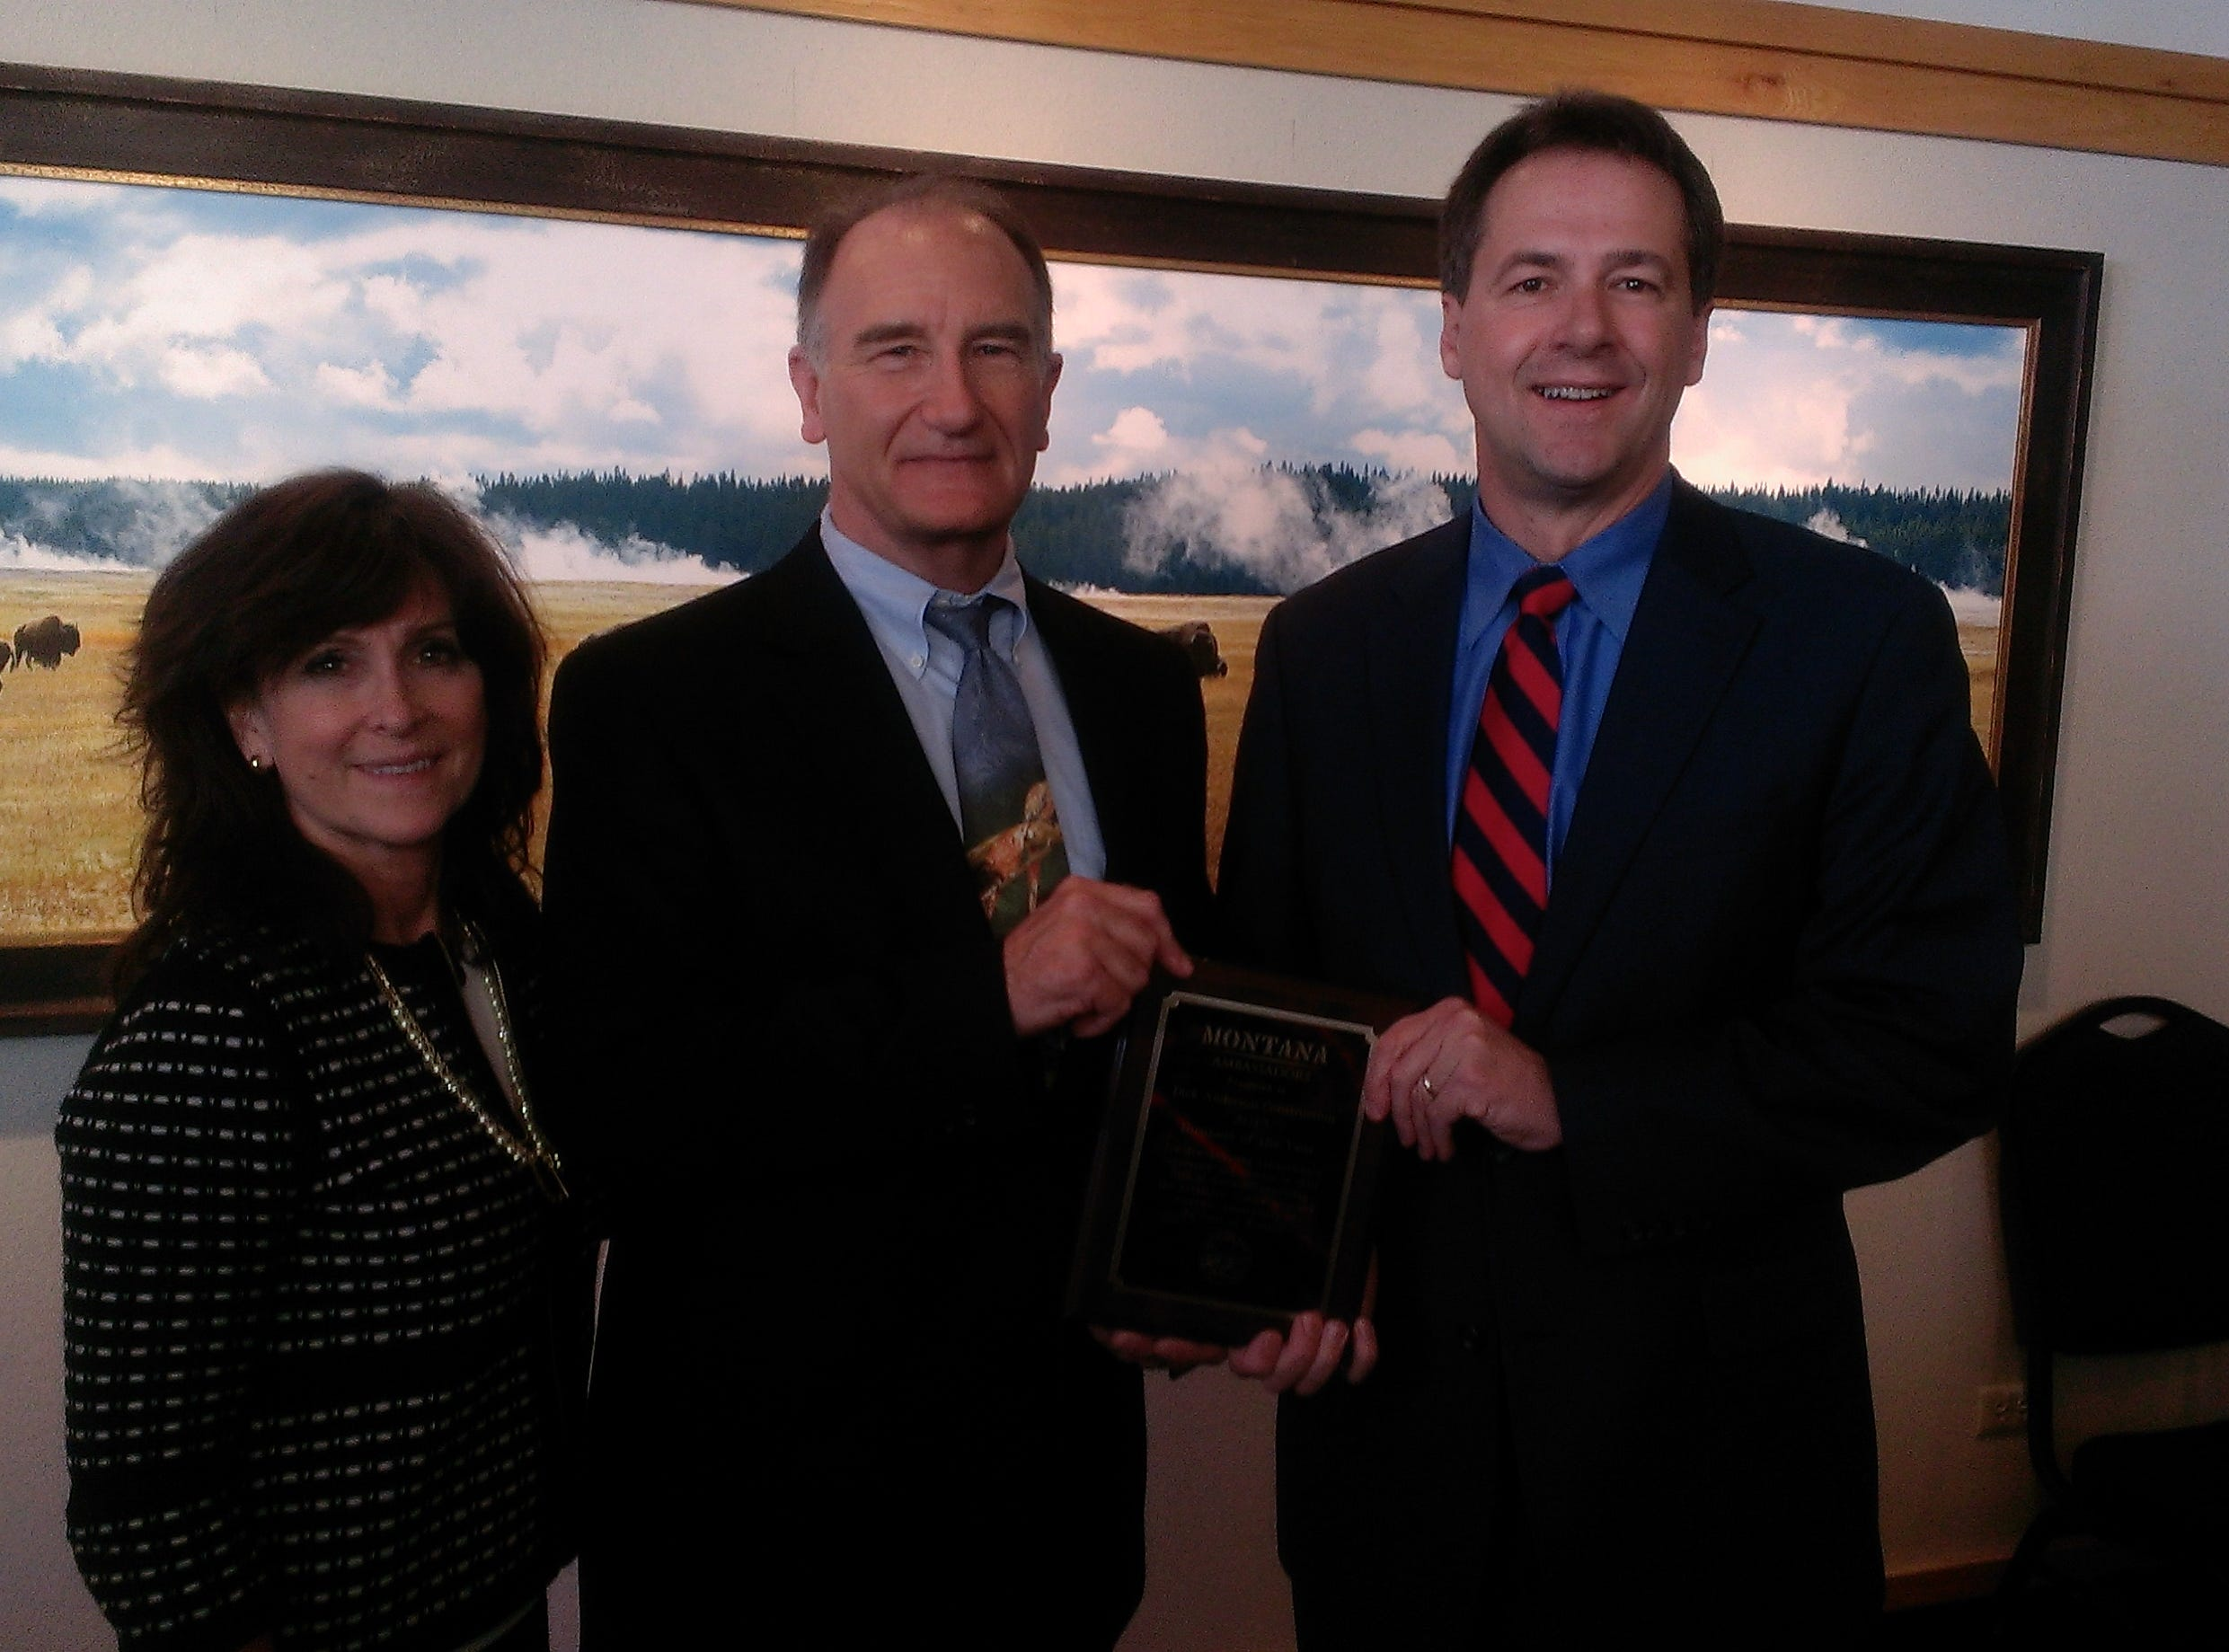 Dick Anderson Construction was presented the 2013 Montana Ambassador Business of the Year Award for demonstrating innovation and success in the industry, and improving the workforce, communities and economic development of the state. From left, Margaret Anderson, Dick Anderson and Gov. Steve Bullock. courtesy photo